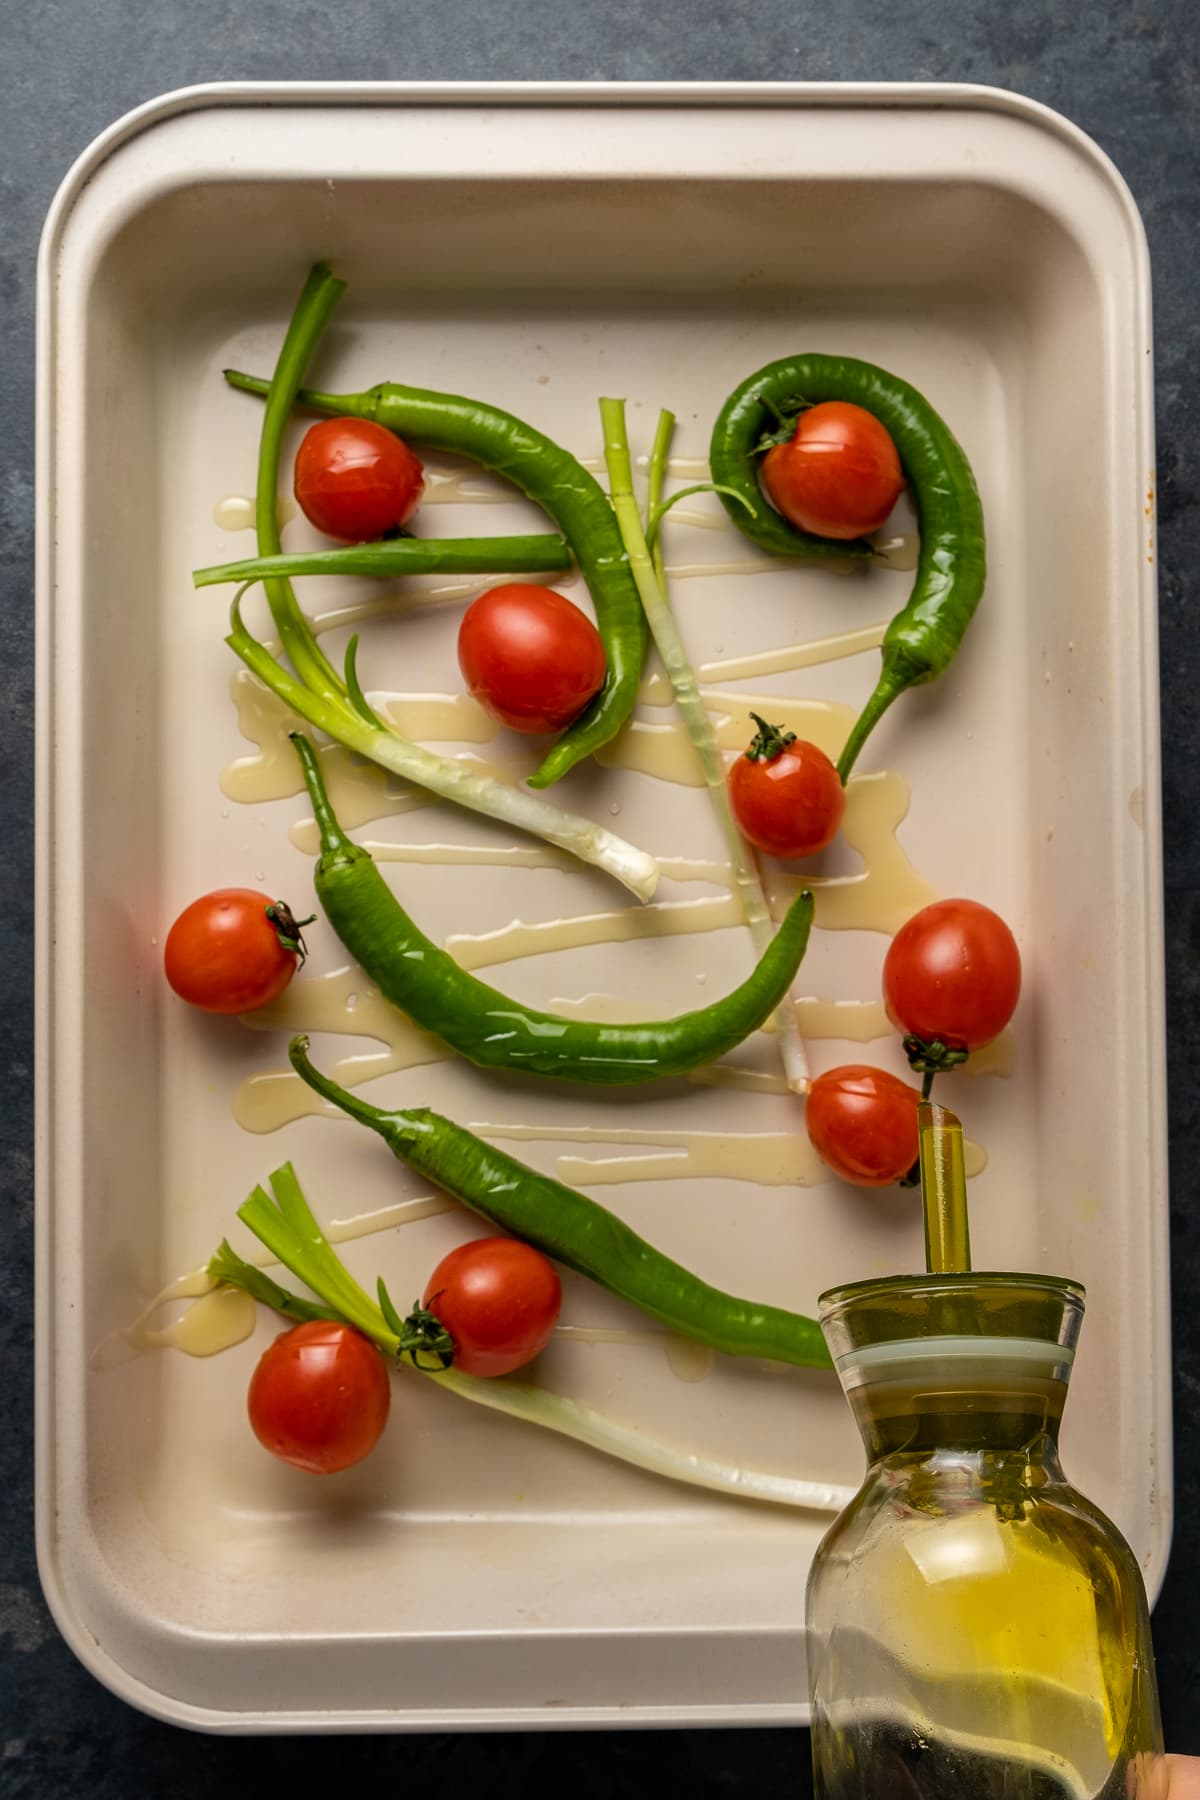 Drizzling olive oil from a bottle on tomatoes, green peppers and green onions in a baking pan.